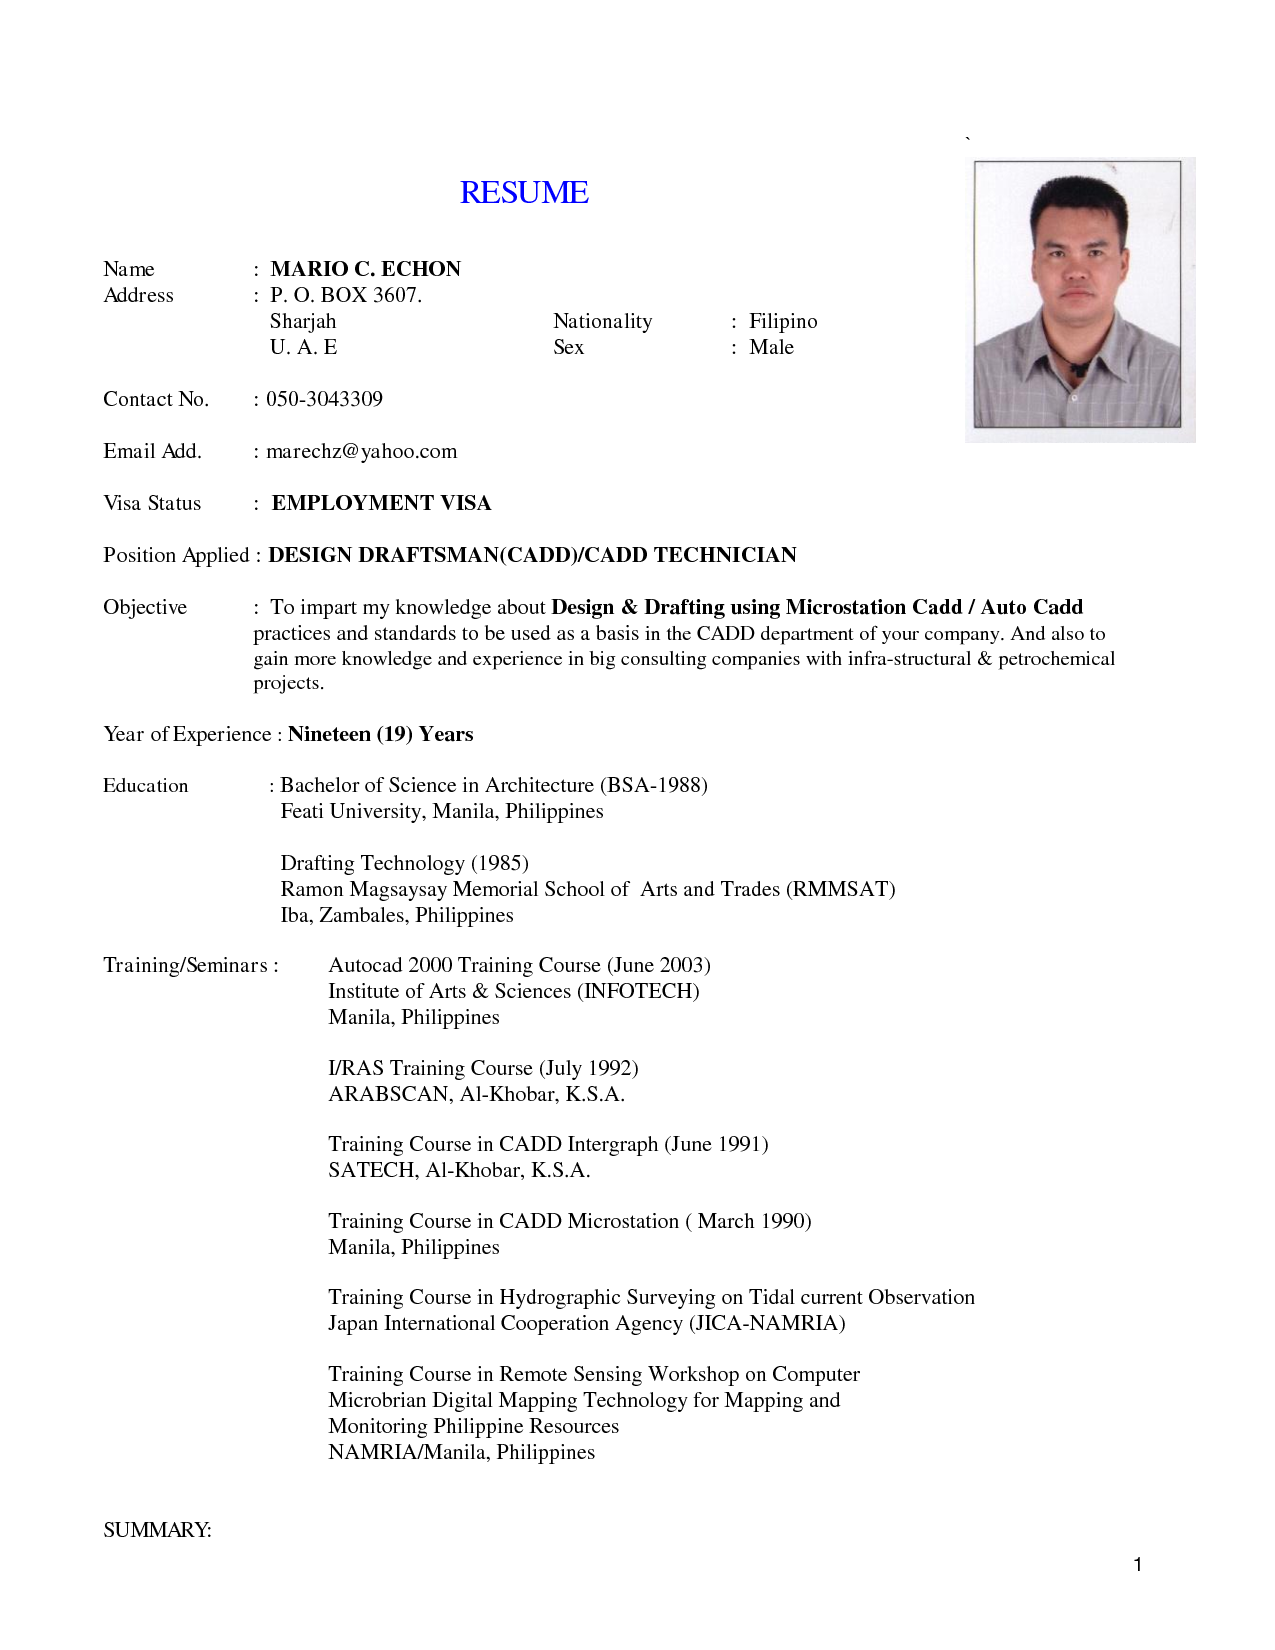 Implemented On The Job Application Technician Resume Sample